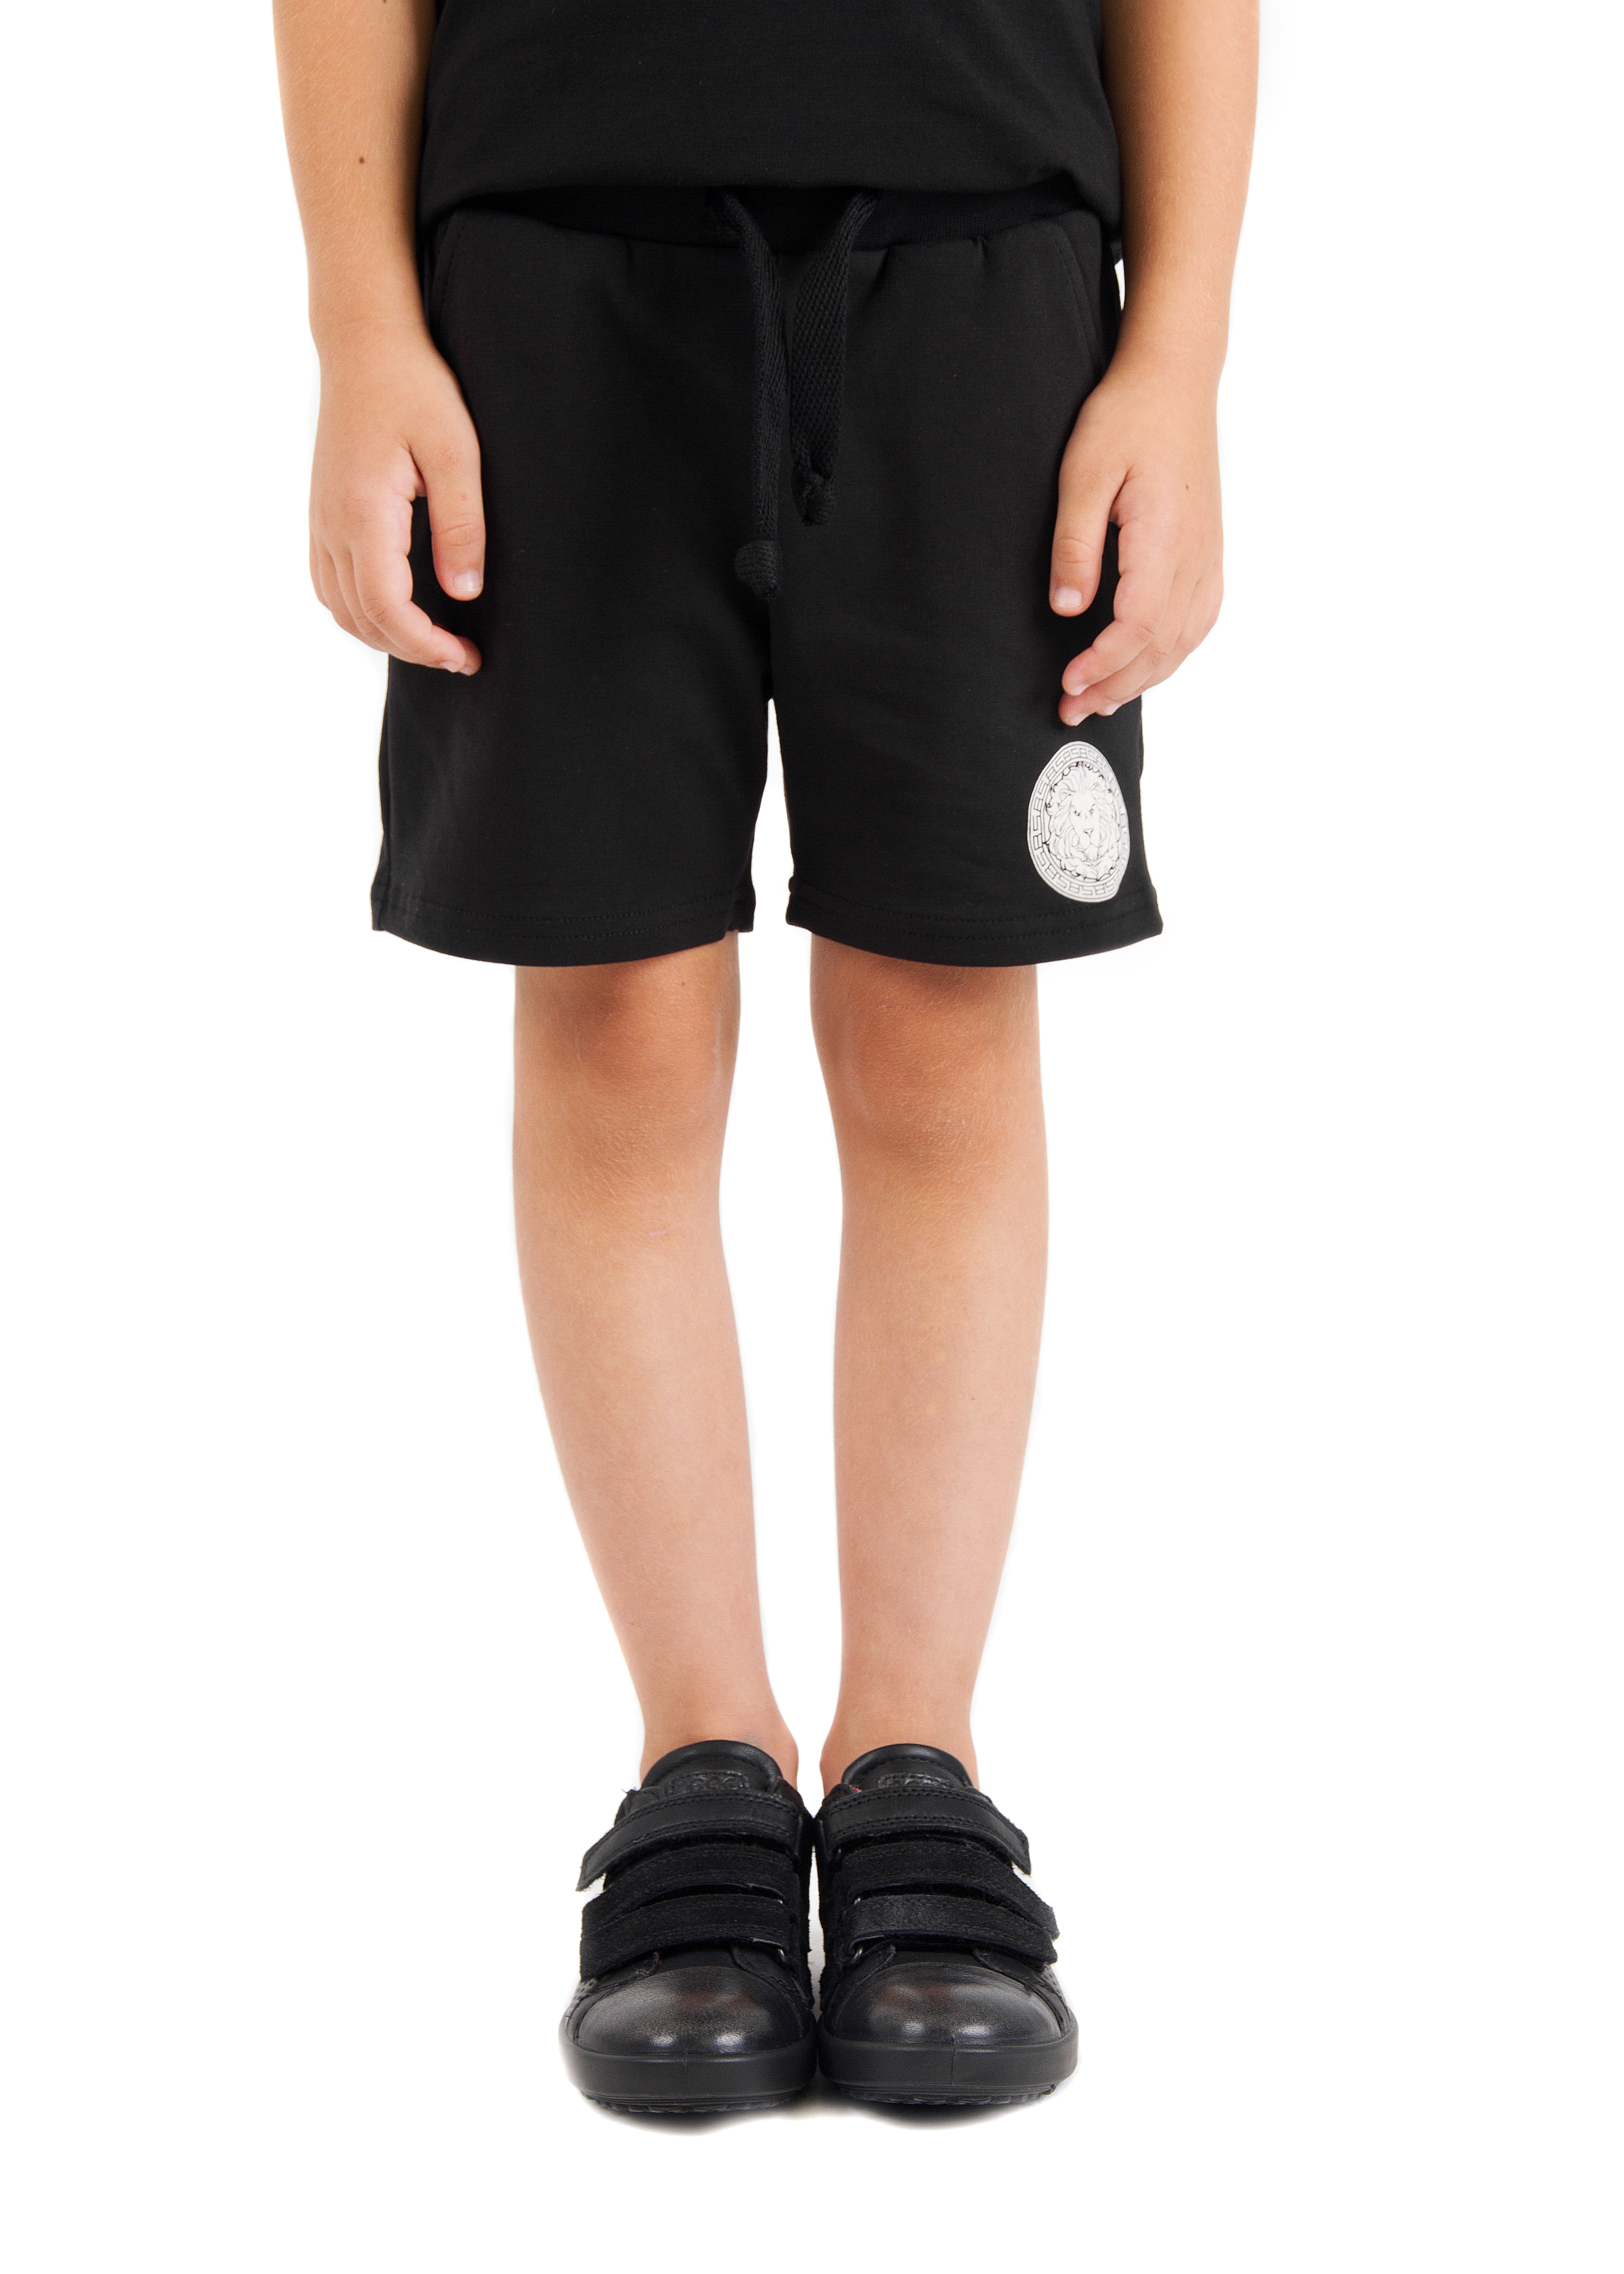 Kids shorts Logo Black StarKIDS<br>Kids shorts by Black Star Wear. Made out of 100% natural cotton tissue. Straight cut, pockets. Decorated with branded patch - lions head with Black Star symbols. Available in black and gray.<br><br>size: 1-2 years<br>color: Black<br>gender: unisex